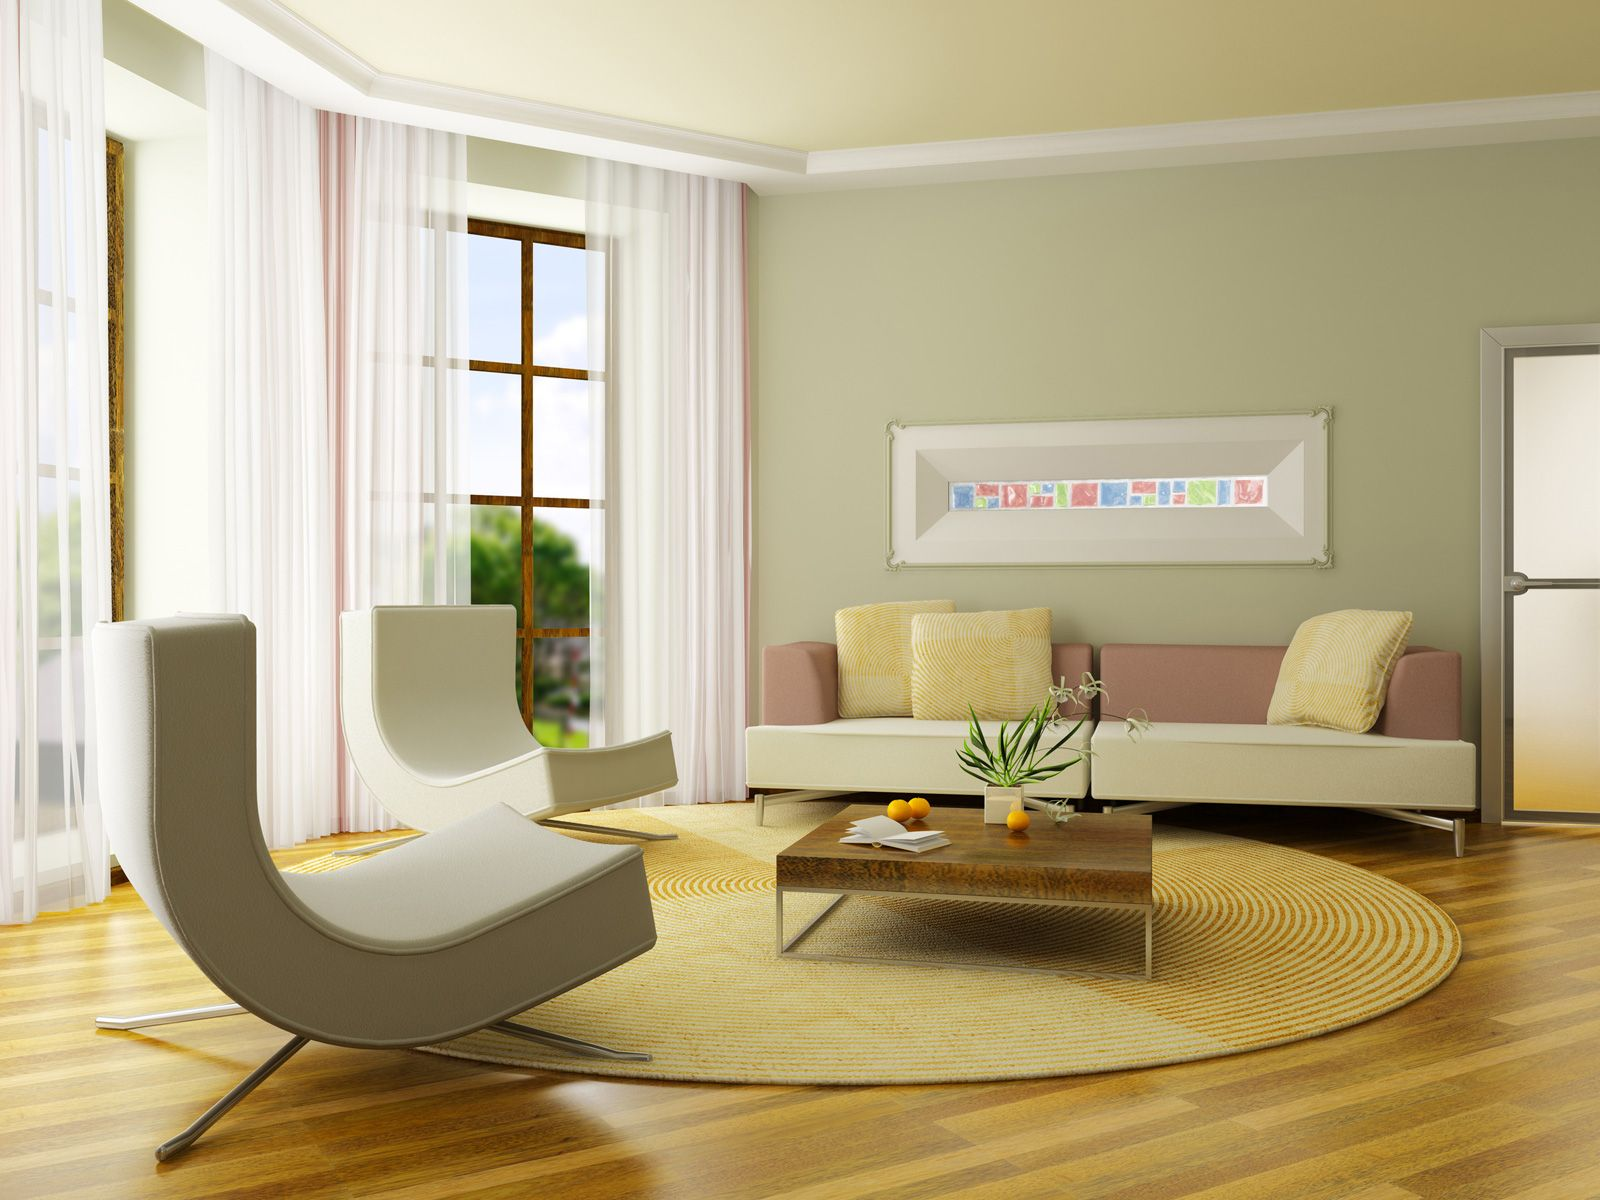 Nice Colors For Living Room - Home Safe